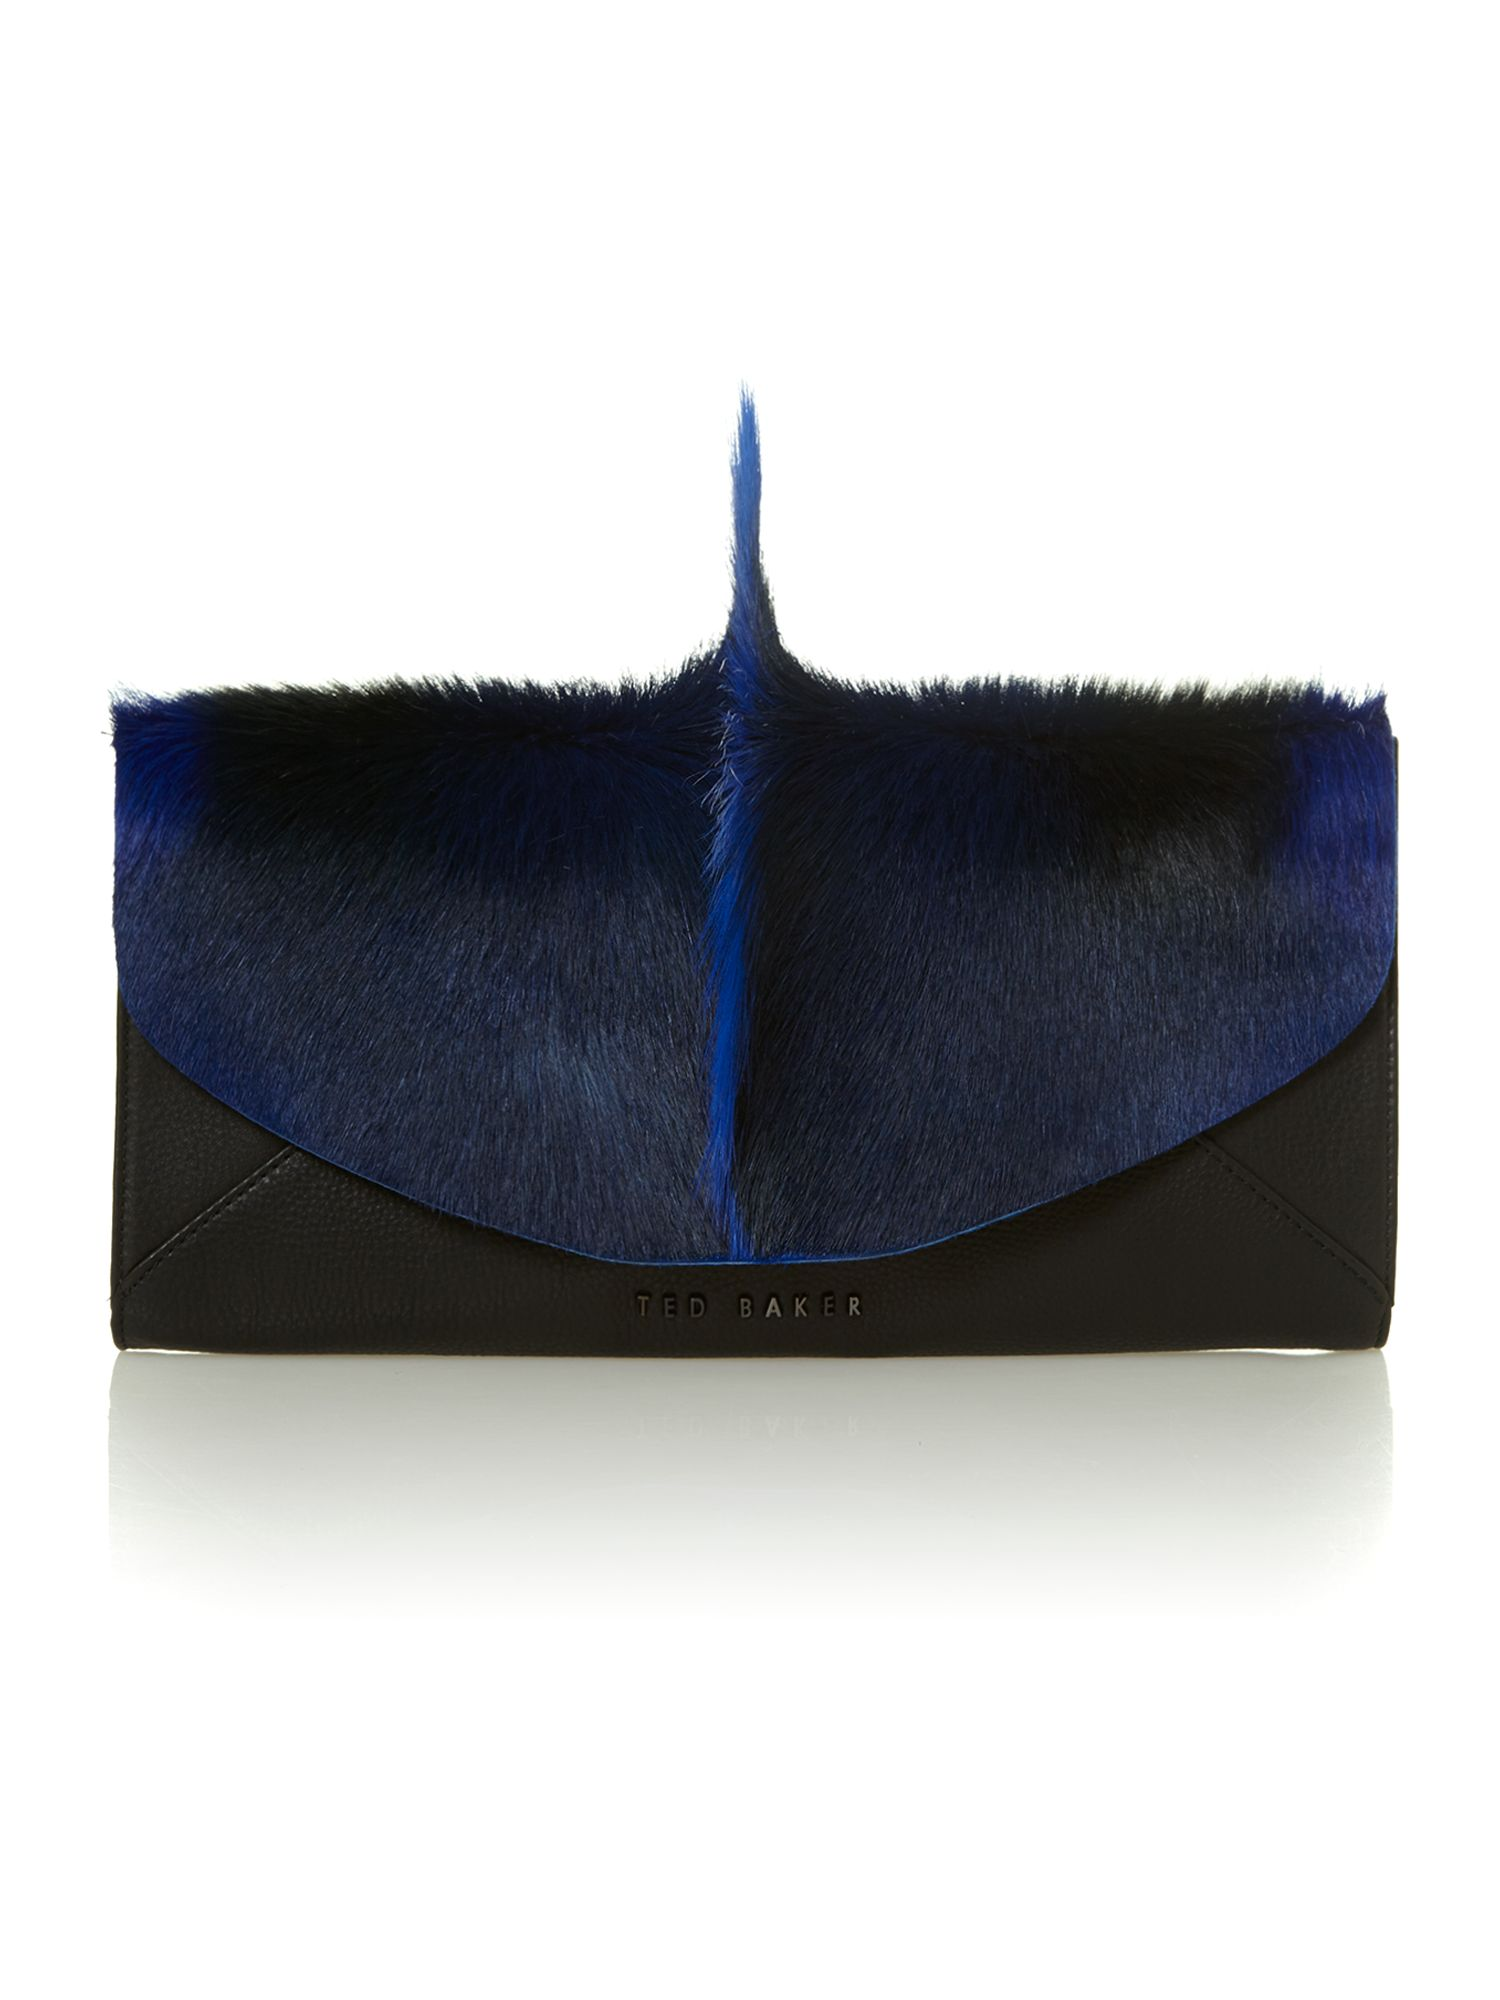 Springbok black clutch bag